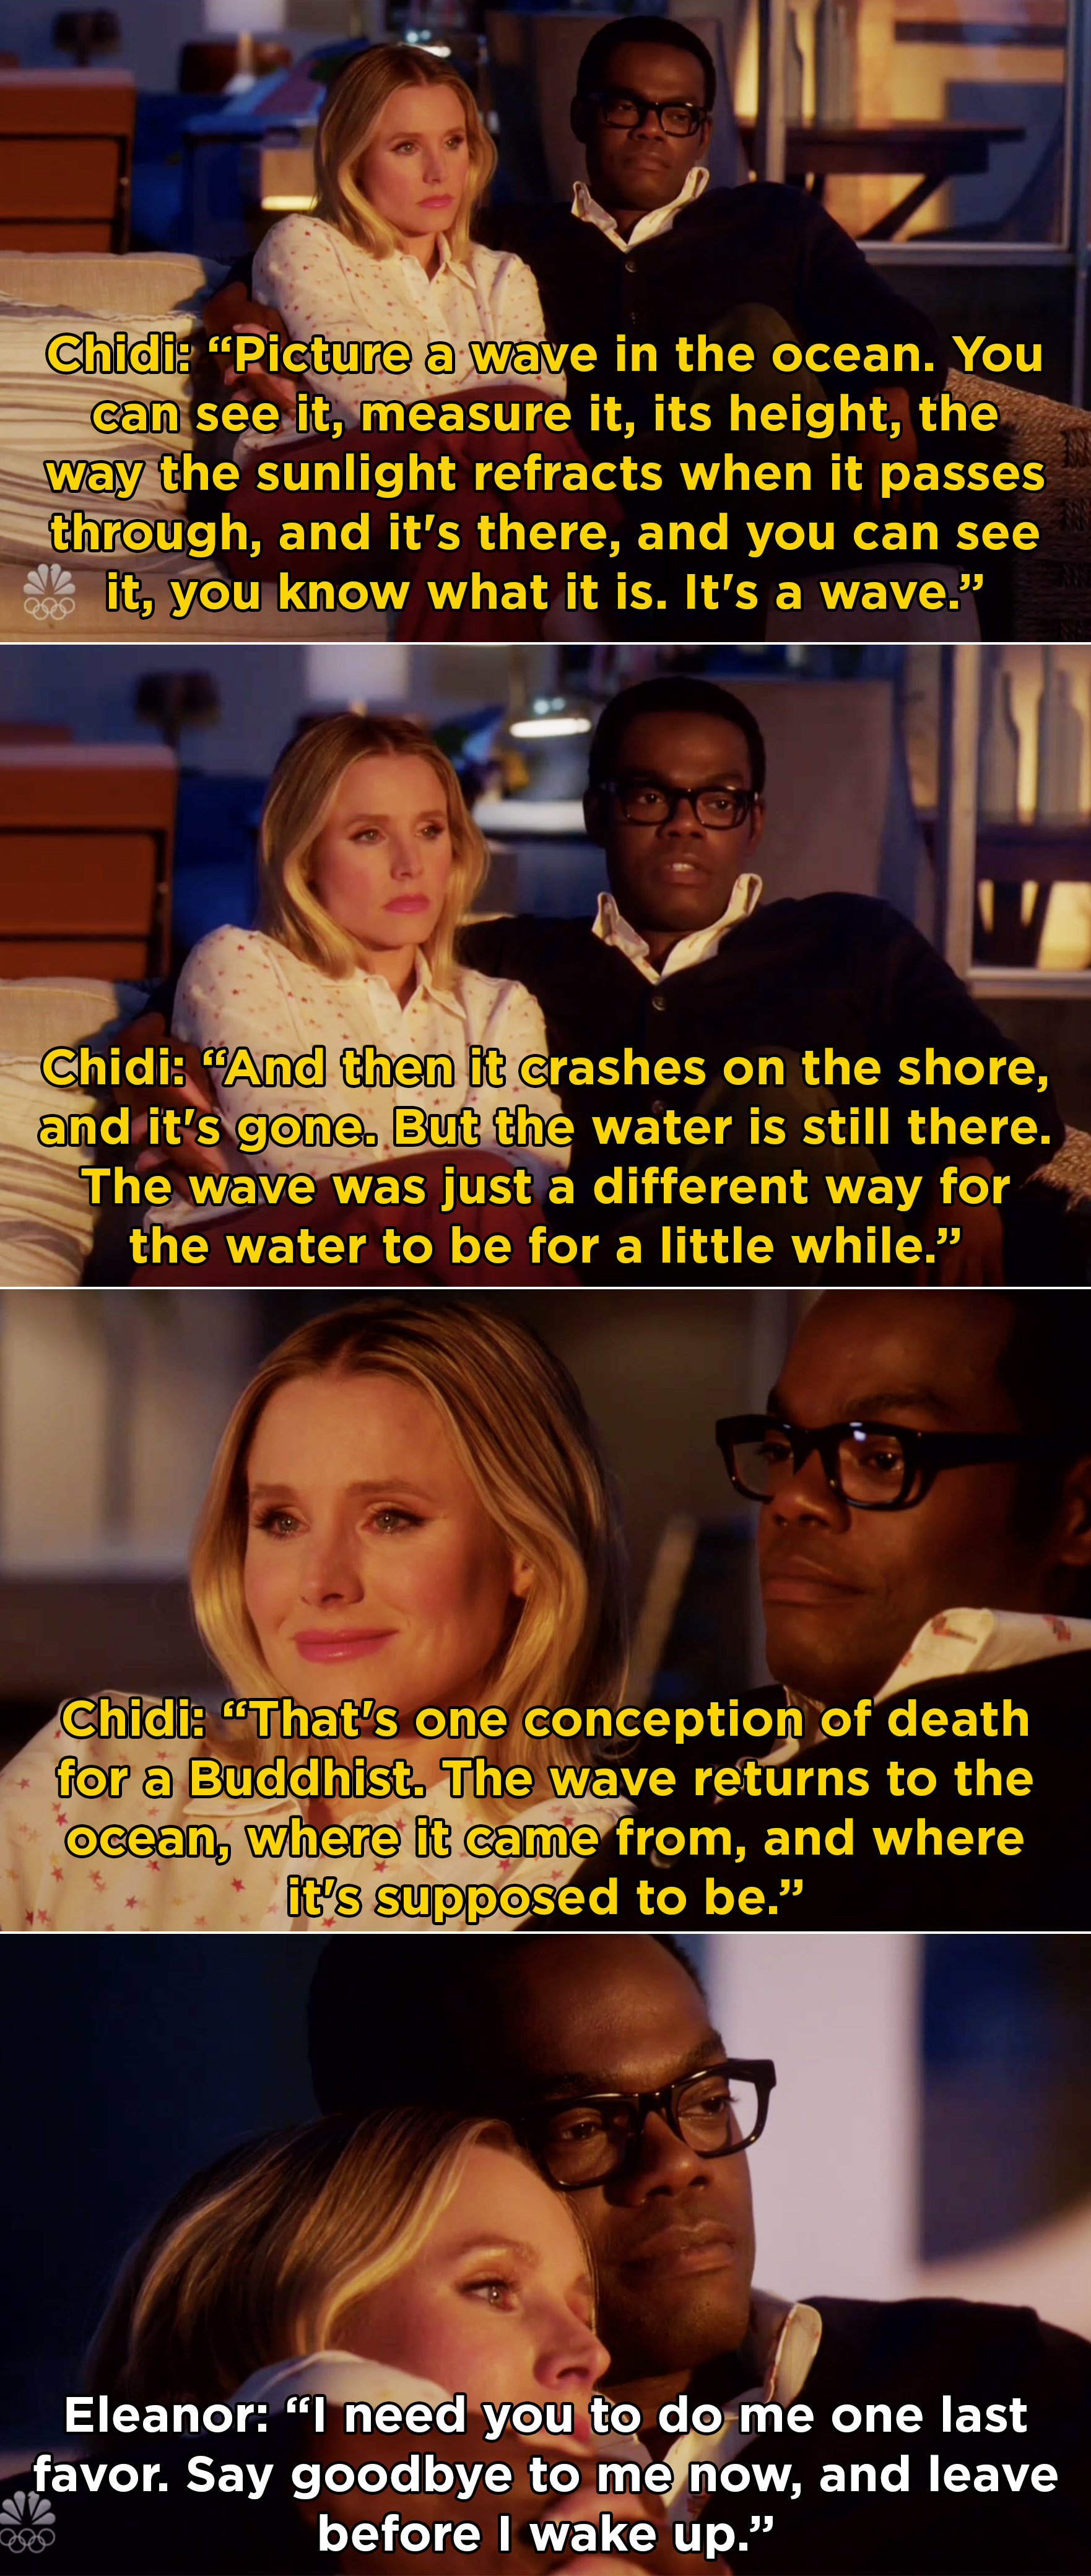 Chidi explaining that a wave is only the way for water to be for a moment, but then it changes